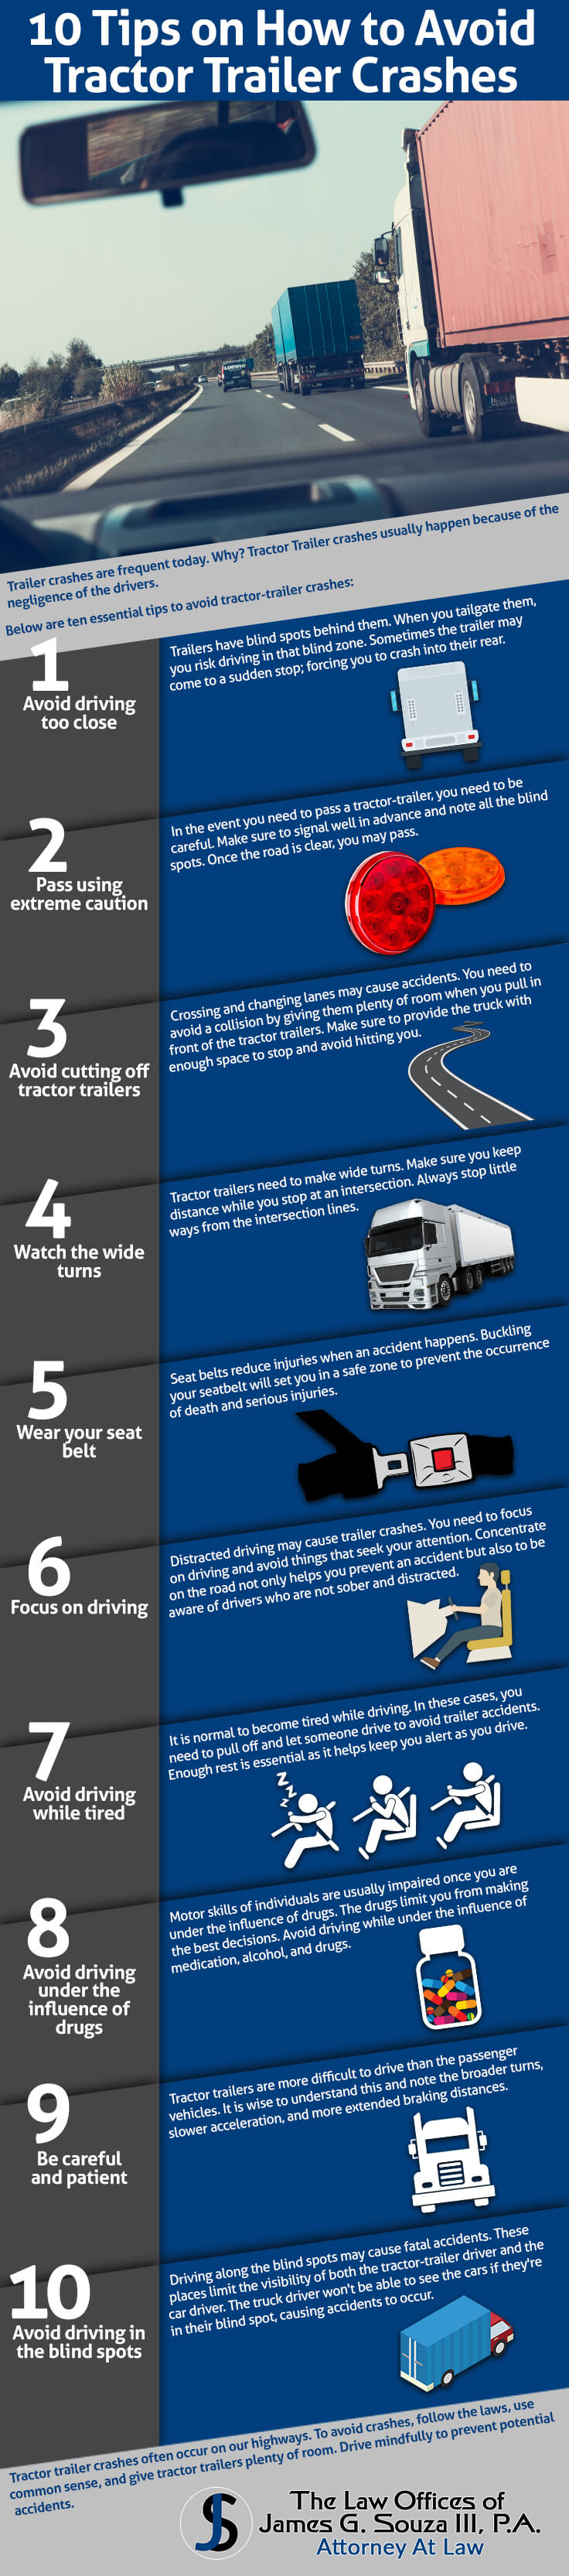 10 Tips On How To Avoid Tractor Trailer Crashes